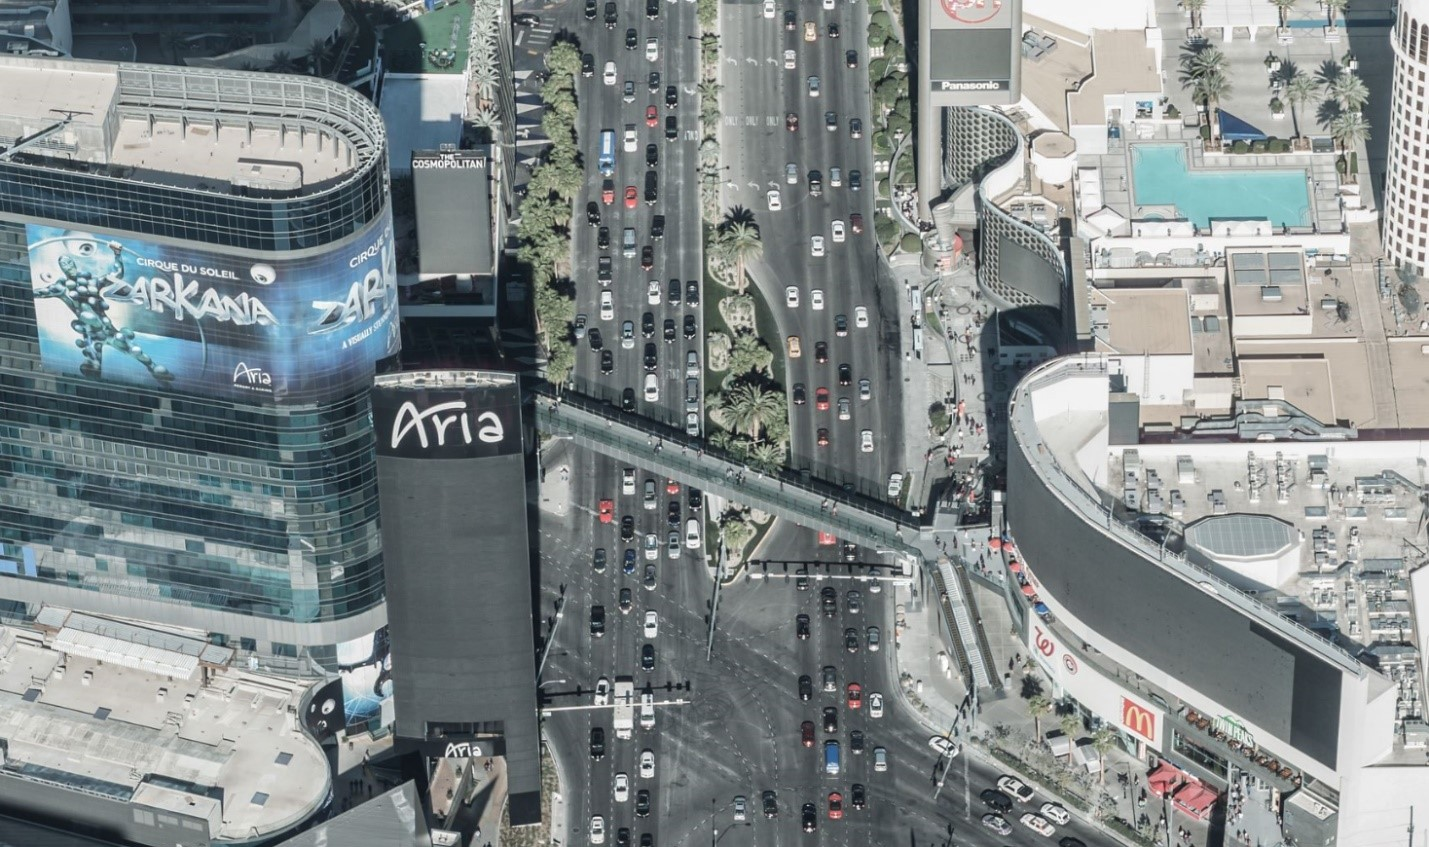 Bing Maps Released New Bird's Eye Imagery TheStrip_LasVegasNV.jpg